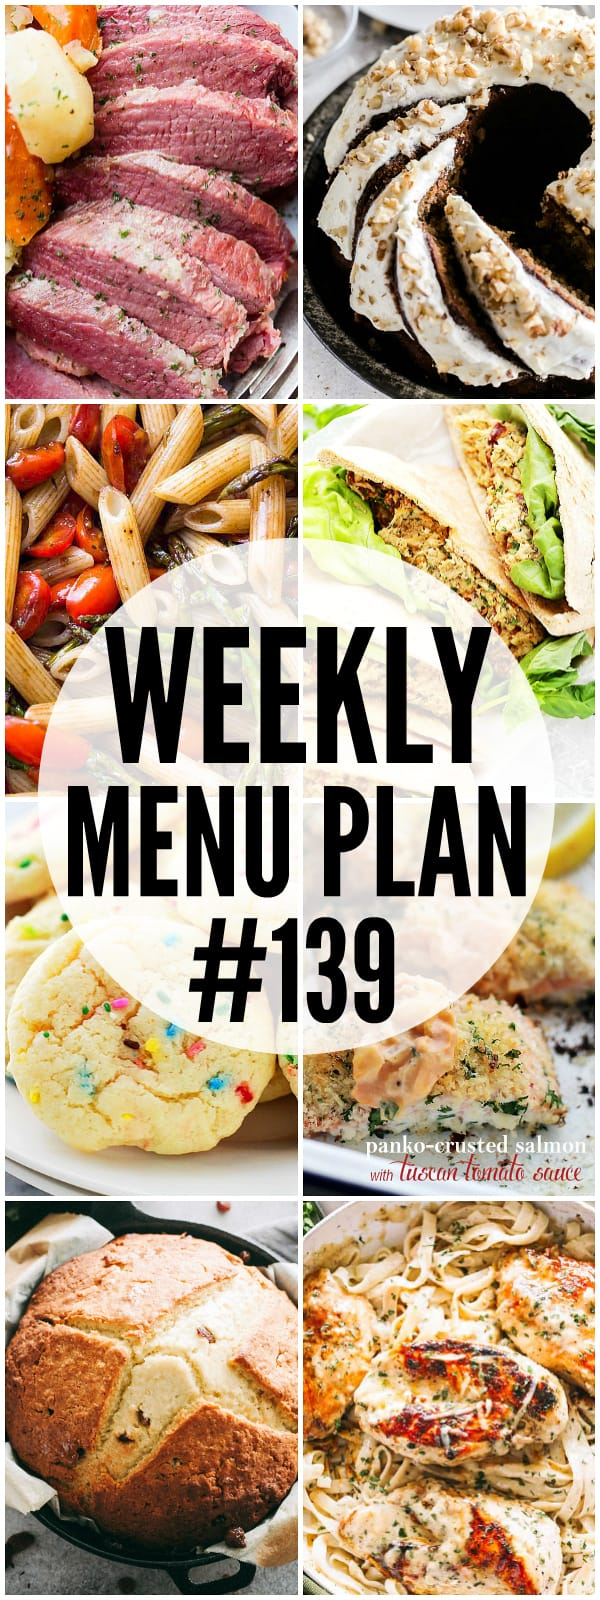 WEEKLY MENU PLAN, dinner recipes, cabbage, corned beef, banana cake, soda bread, tuna salad, pasta